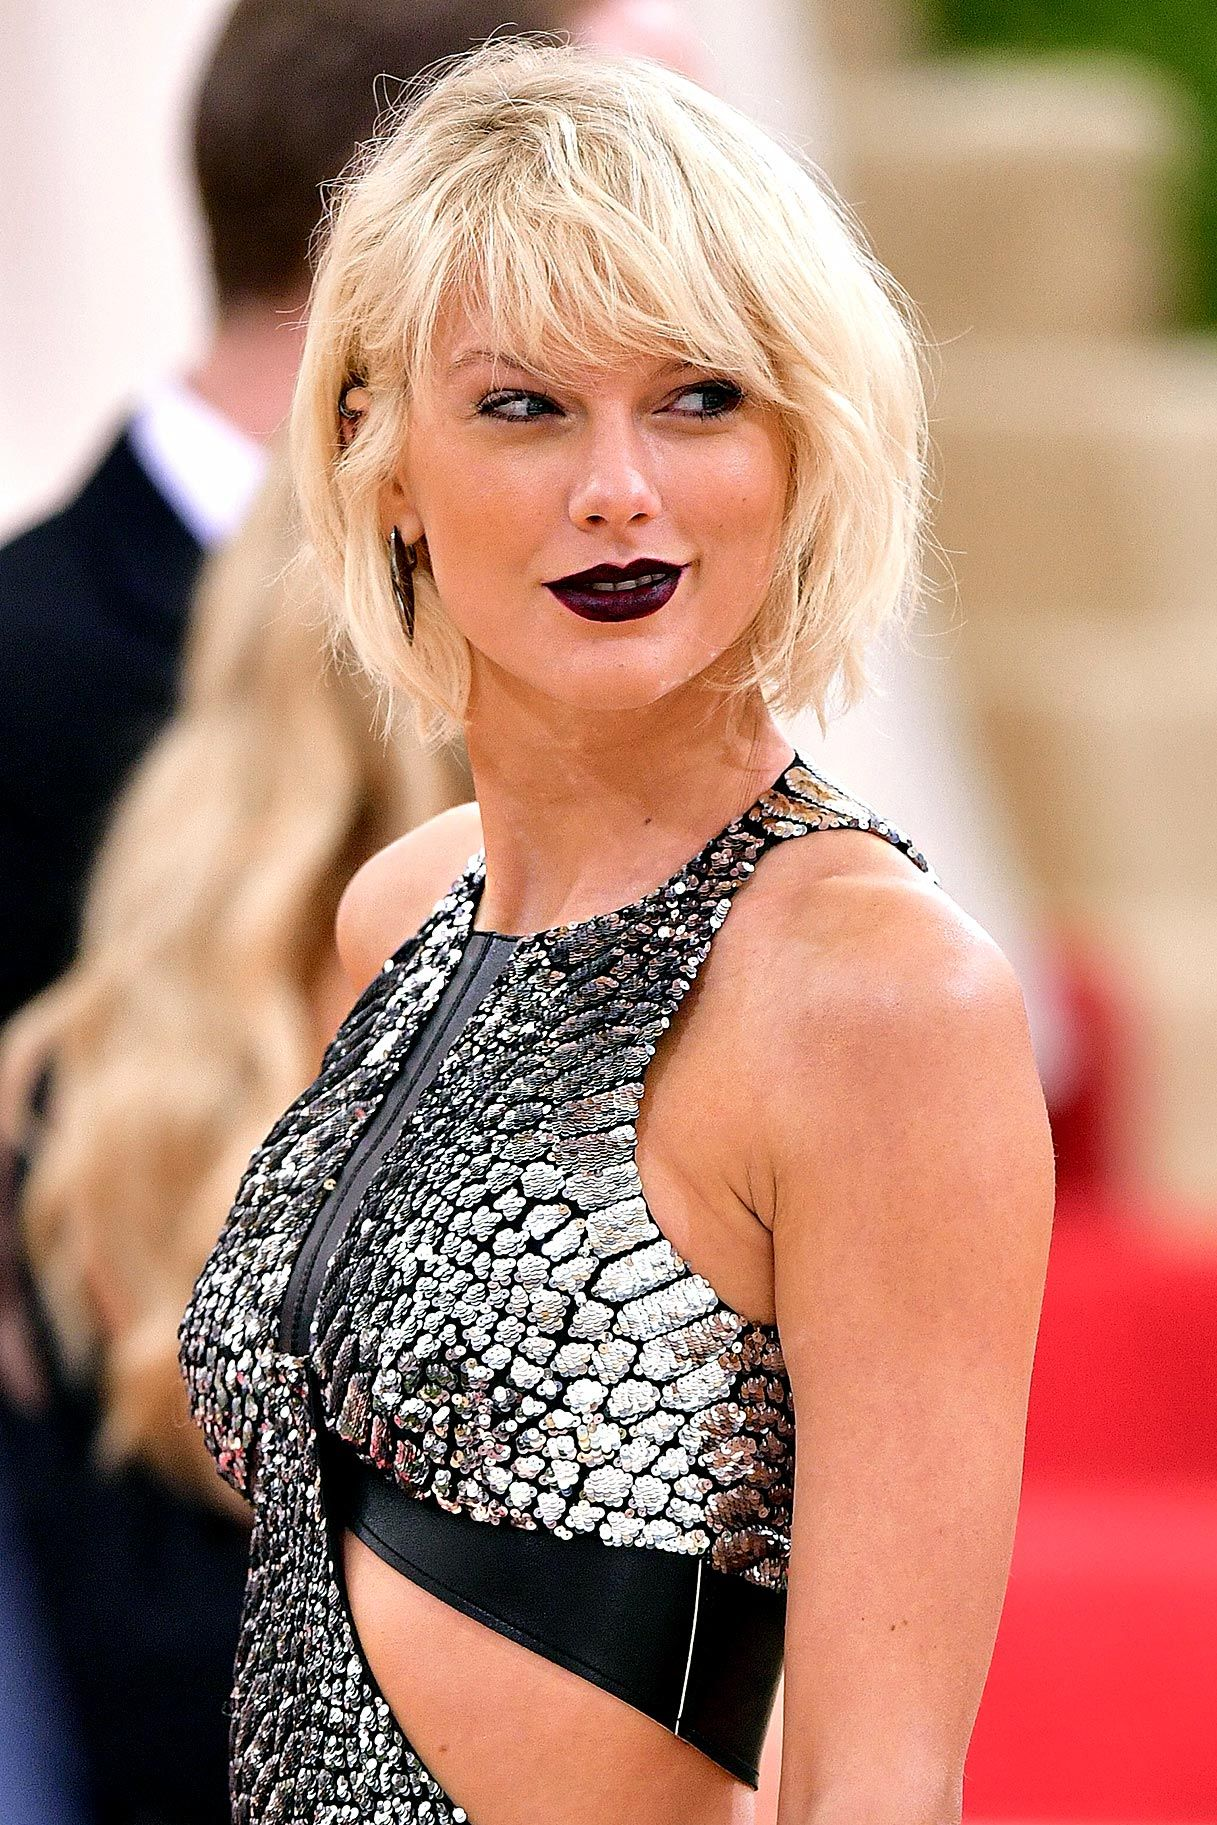 Taylor Swift Break Up Insurance Is Now Something You Can Buy Taylor Swift Bleach Blonde Taylor Swift Bleached Hair Taylor Swift Hot